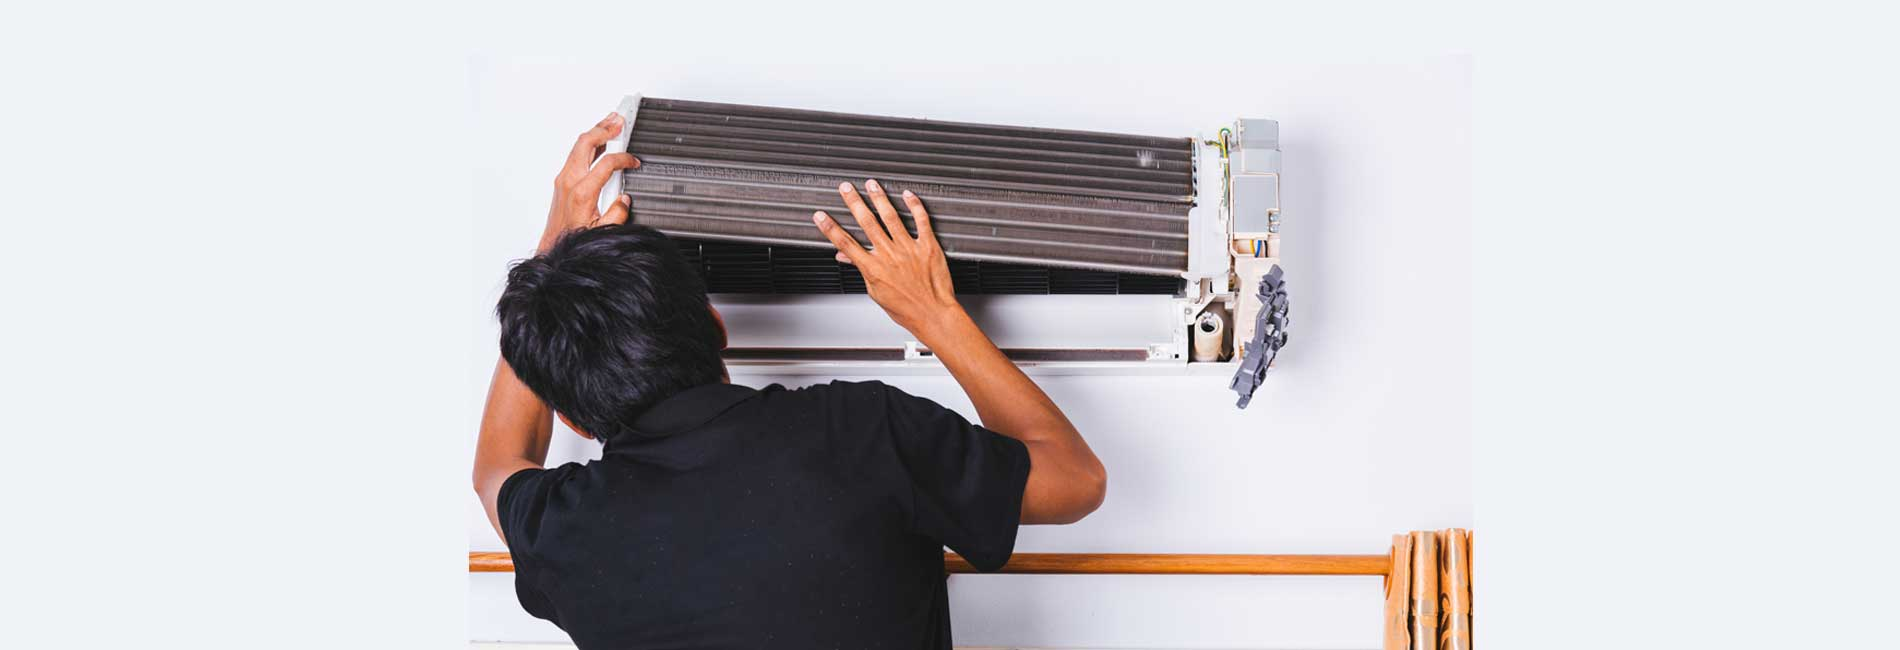 Panasonic AC Repair in Pallikaranai